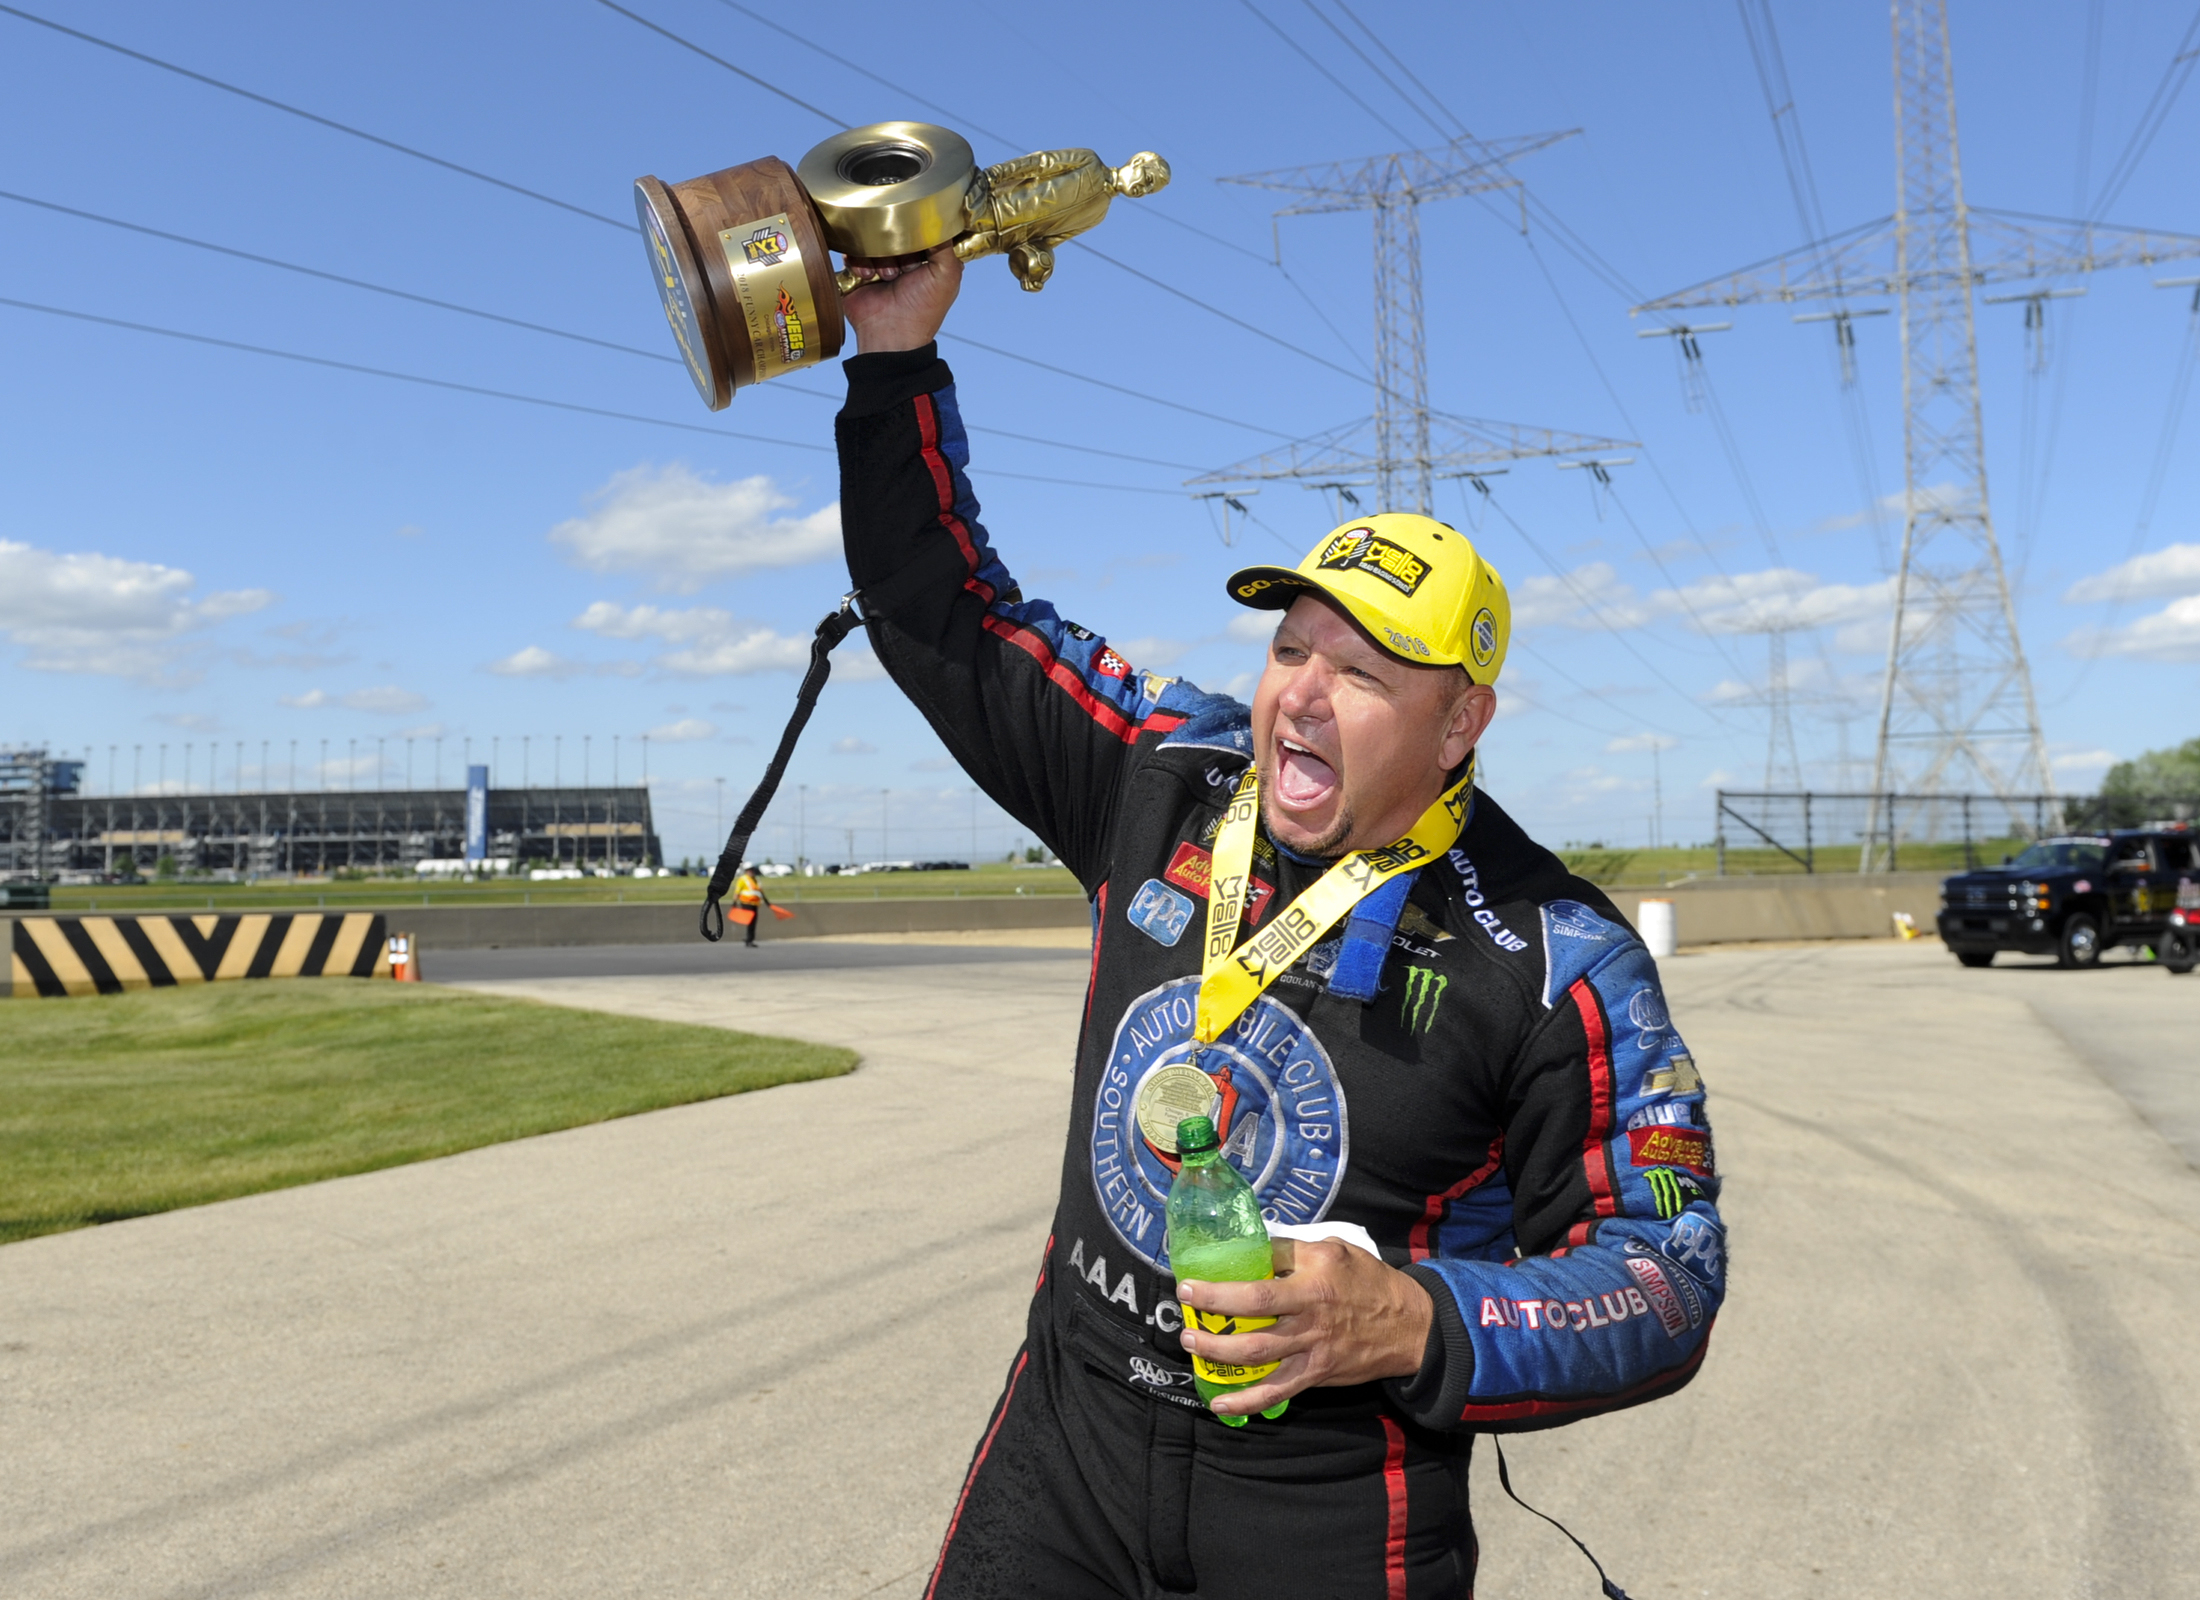 Funny Car pilot Robert Hight after winning the Wally on Sunday at the 2018 Route 66 NHRA Nationals